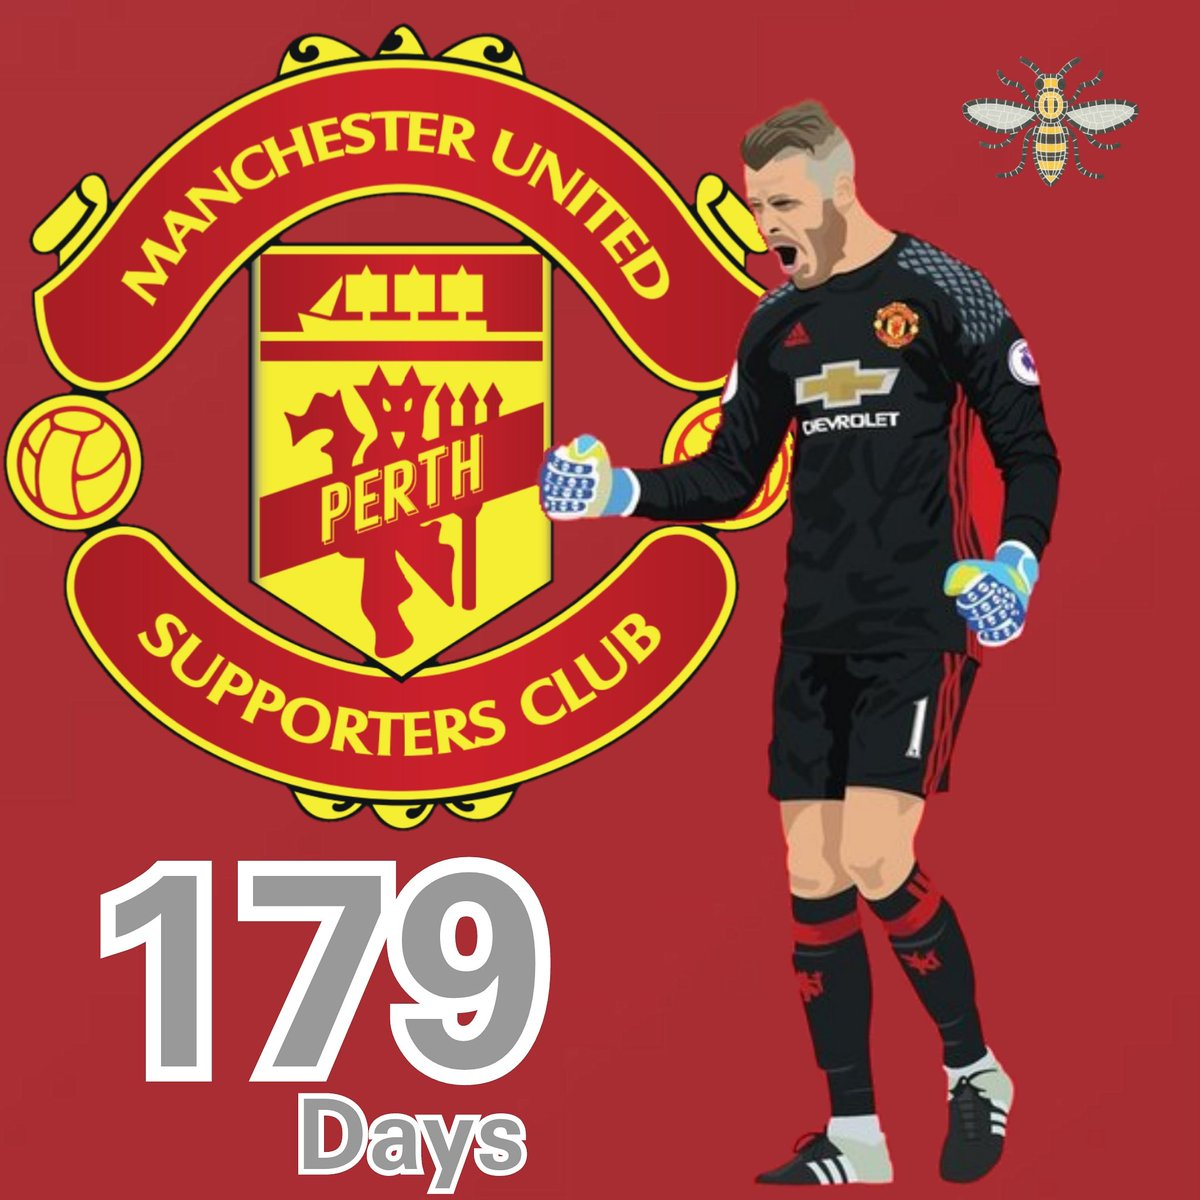 179 days till @d_degeaofficial keeps another clean sheet against @perthgloryfc for @manchesterunited @optusstadium   https://optusstadium.com.au/united-in-perth/ …  #perthwesternaustralia #mutour #unitedinperth  #seeperth #optusstadium  #manutd #manchester #united #pmusc #perthreds #mufc #perthmusc